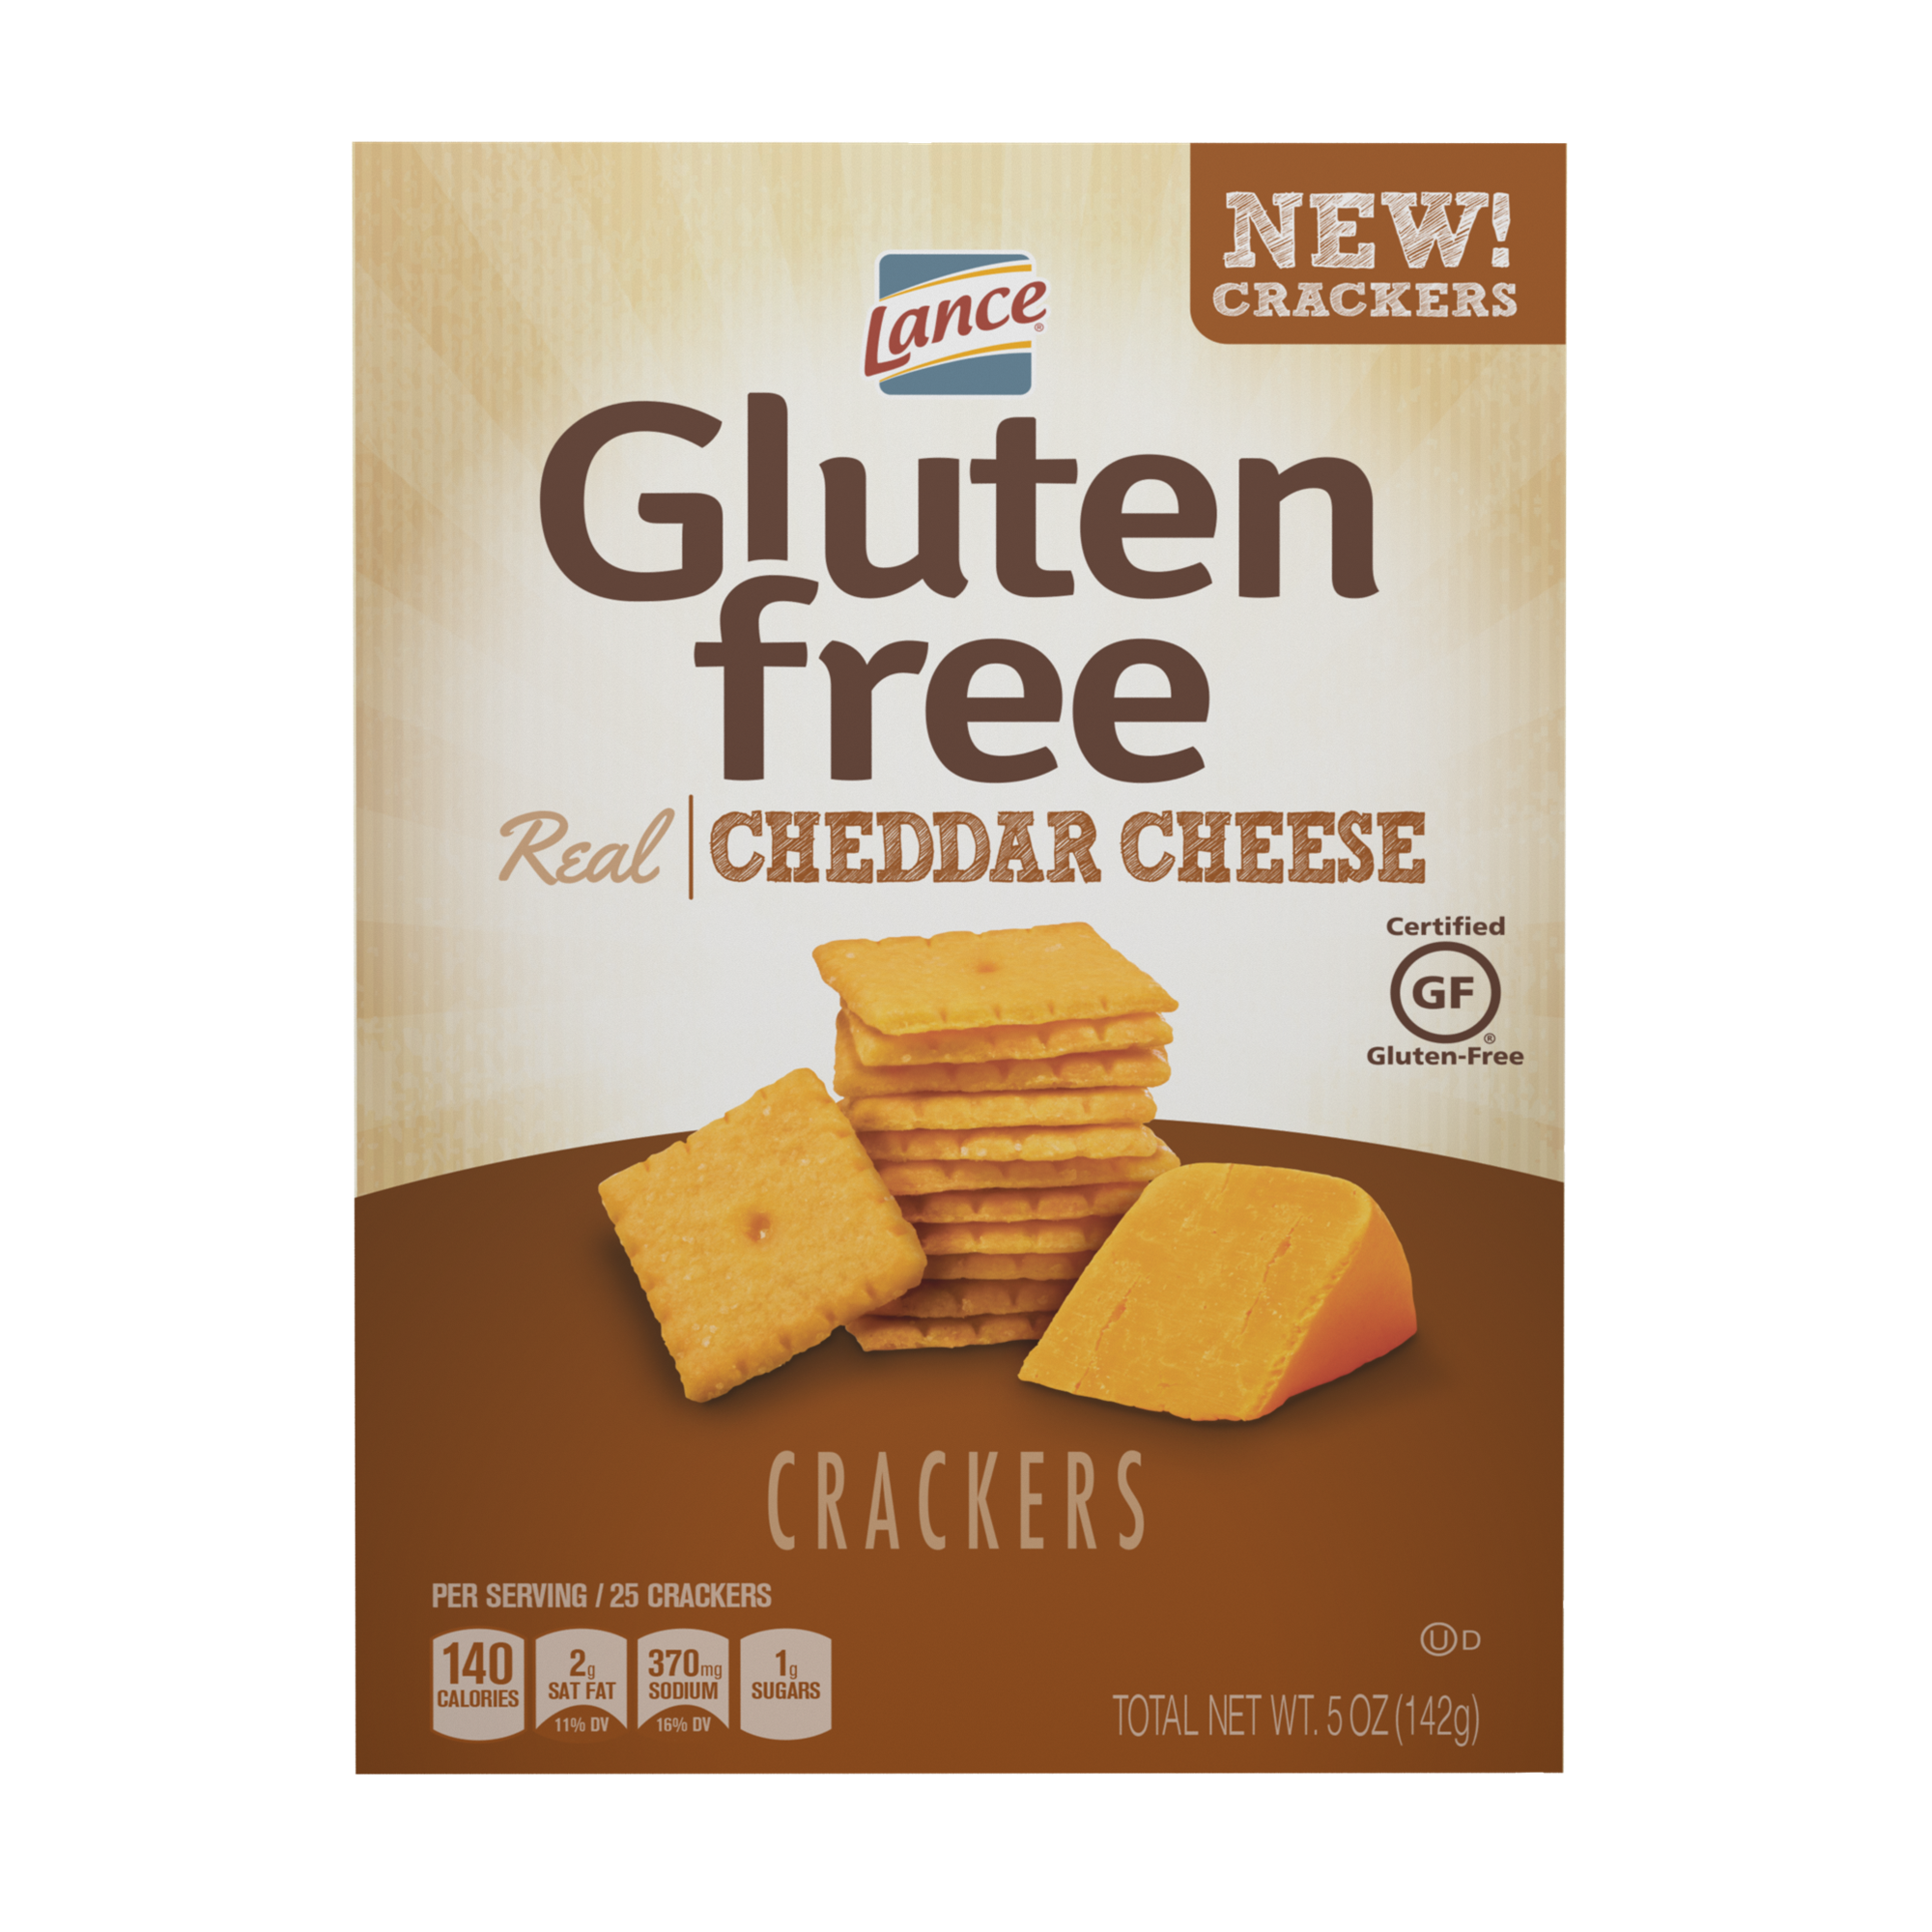 (2 Pack) Lance Gluten Free Cheddar Cheese Crackers, 5 Oz